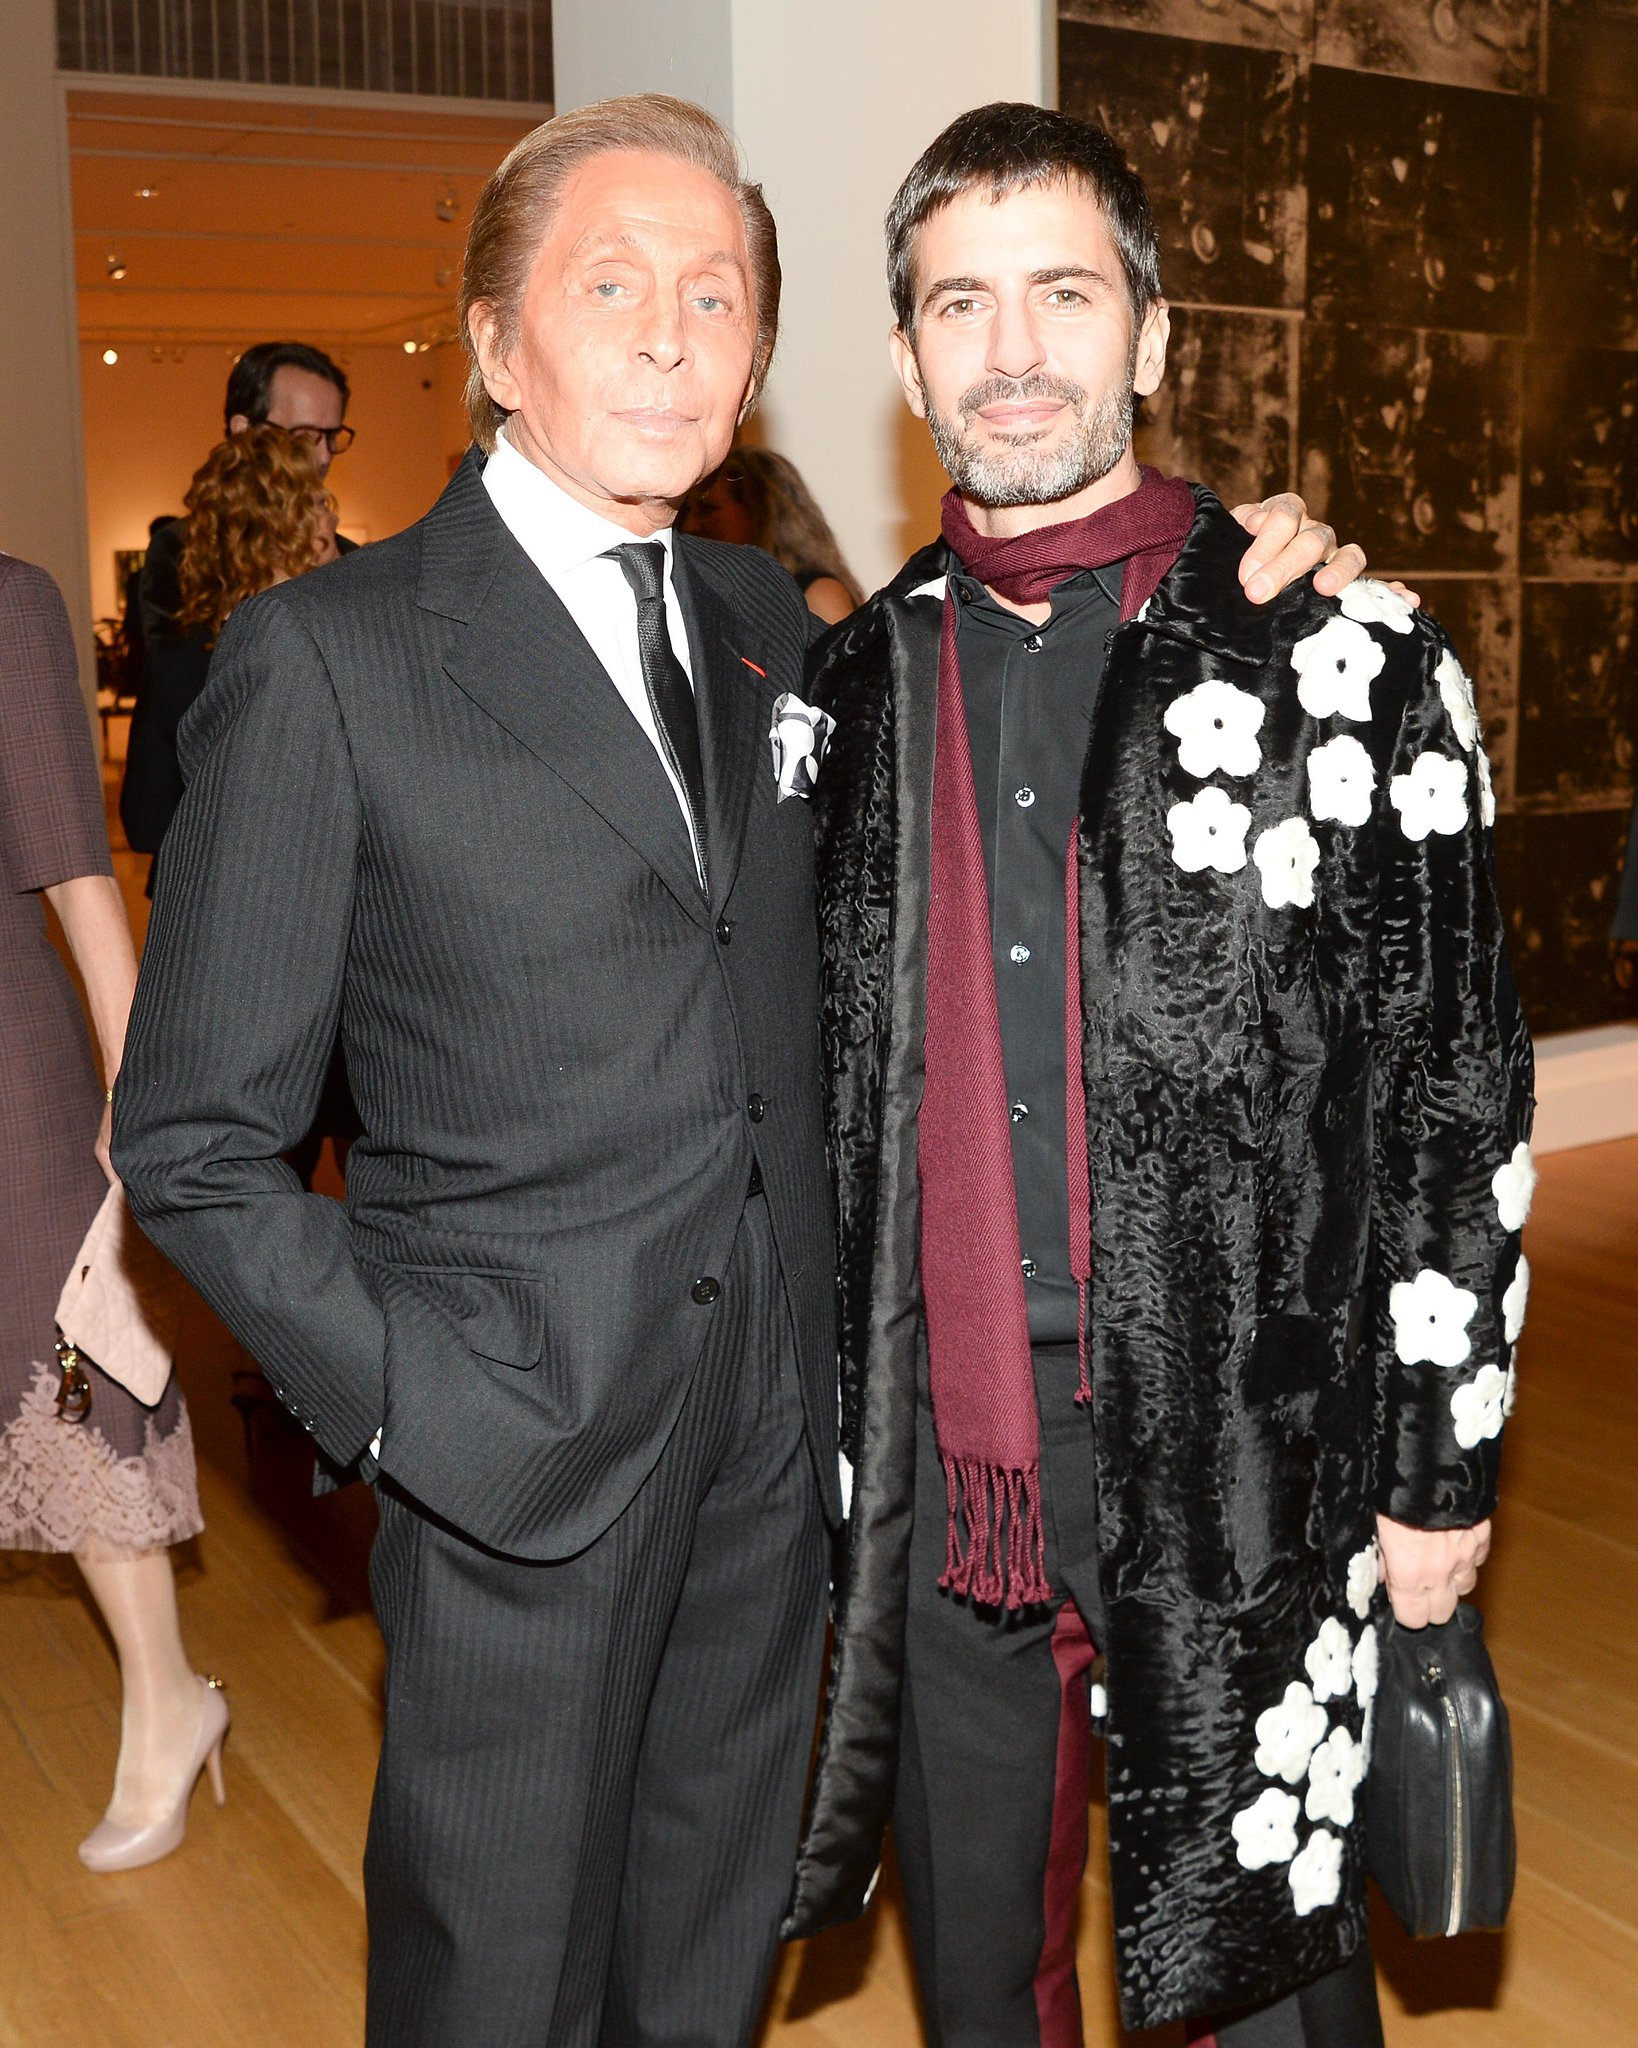 Marc Jacobs and Valentino Garavani at Sotheby's.